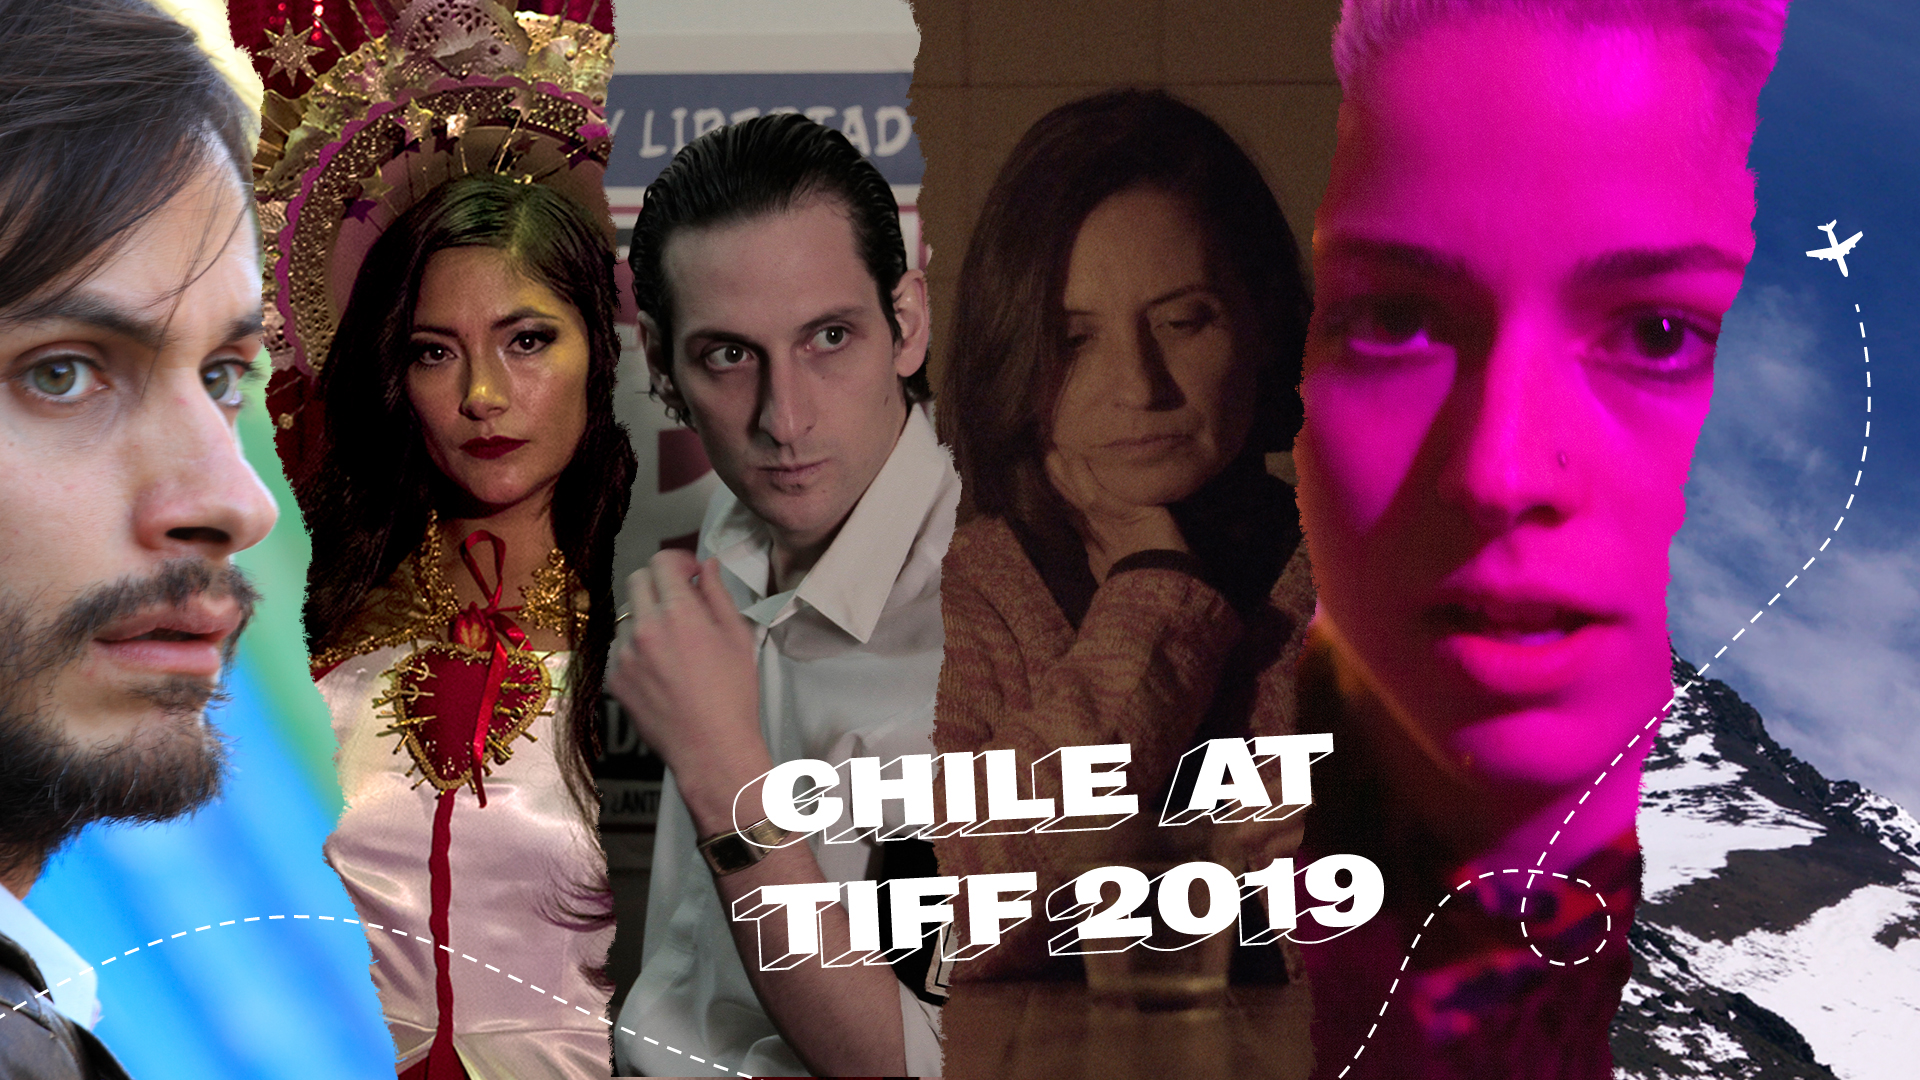 Films of new and consecrated Chilean directors land in the Toronto Film Festival